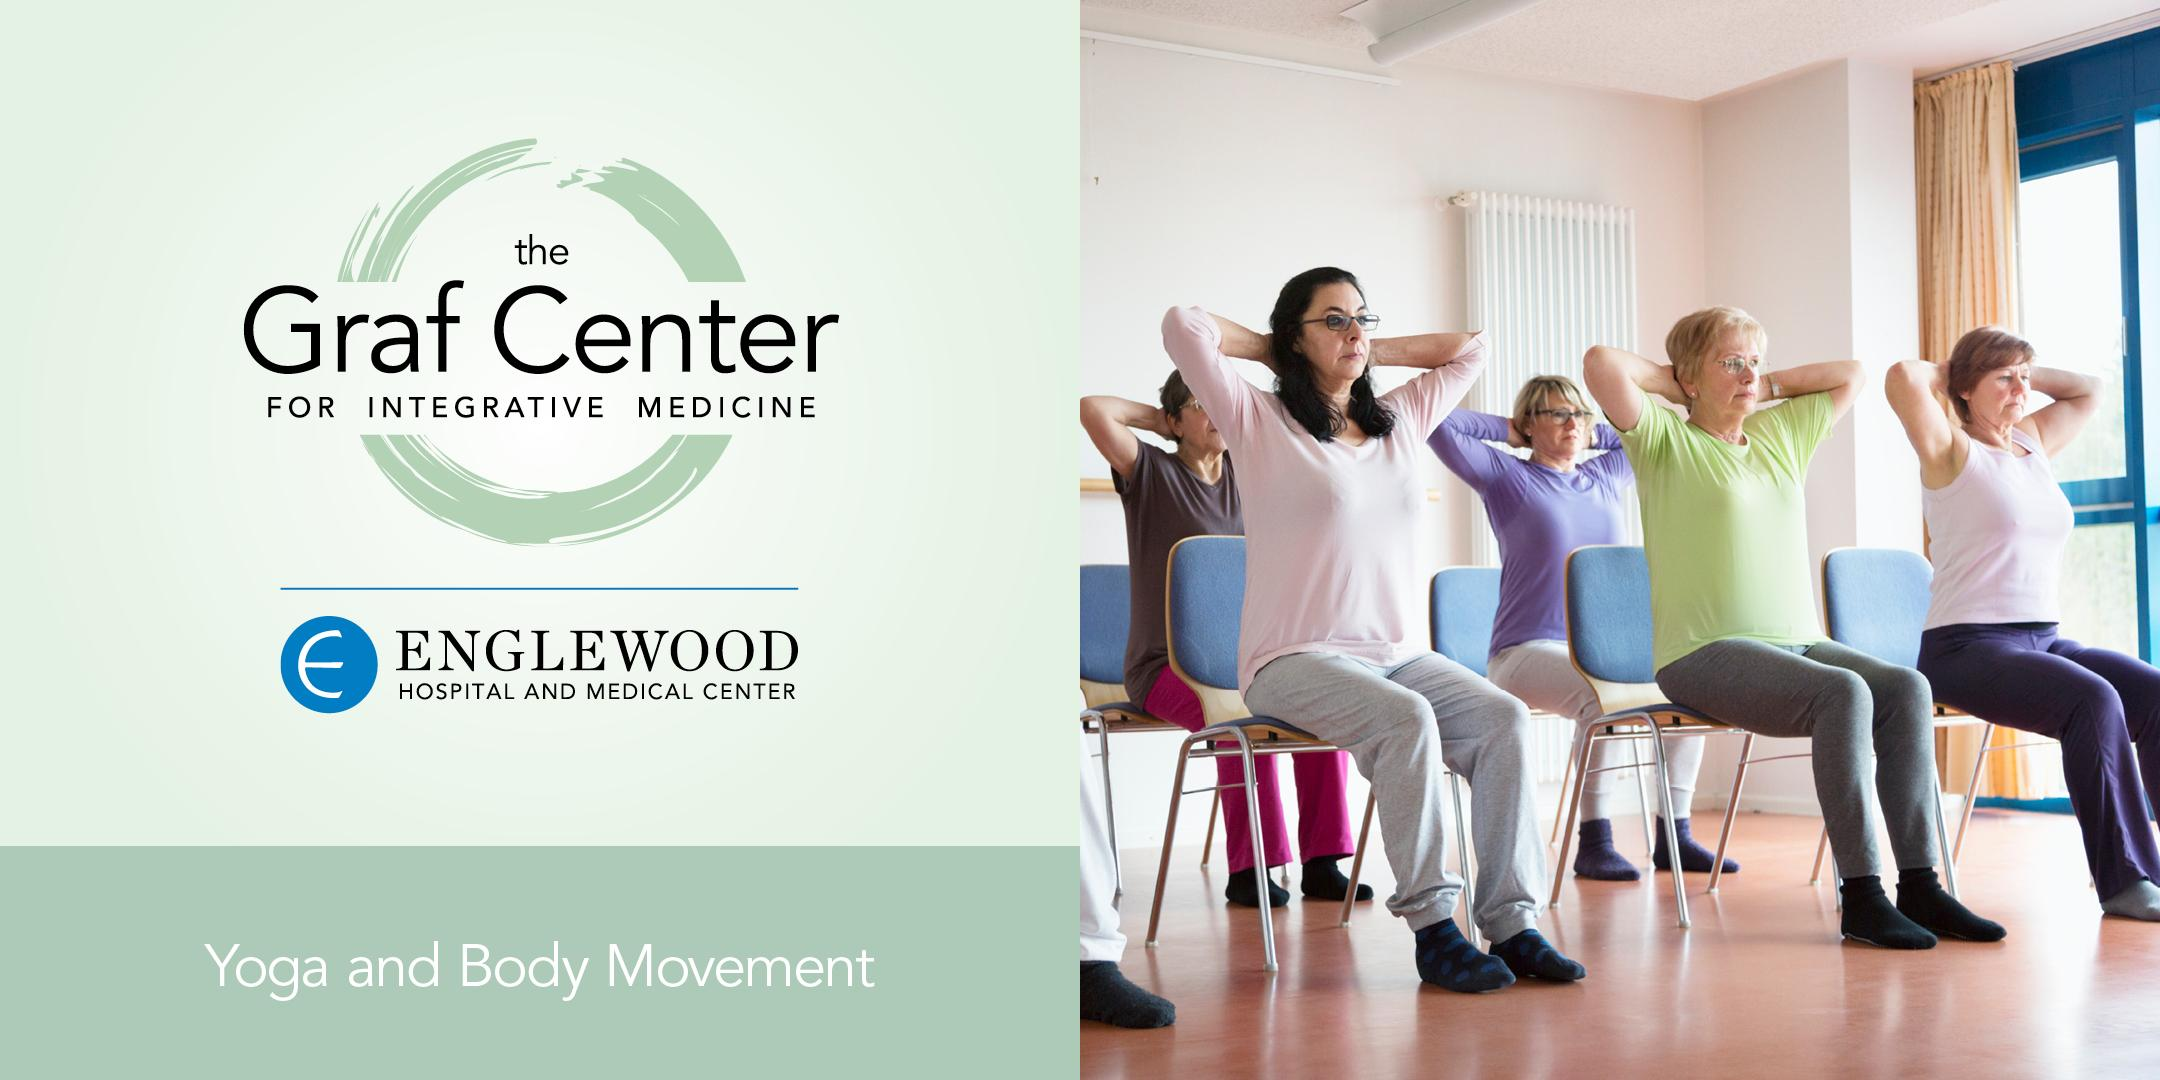 More info: Therapeutic Chair Yoga